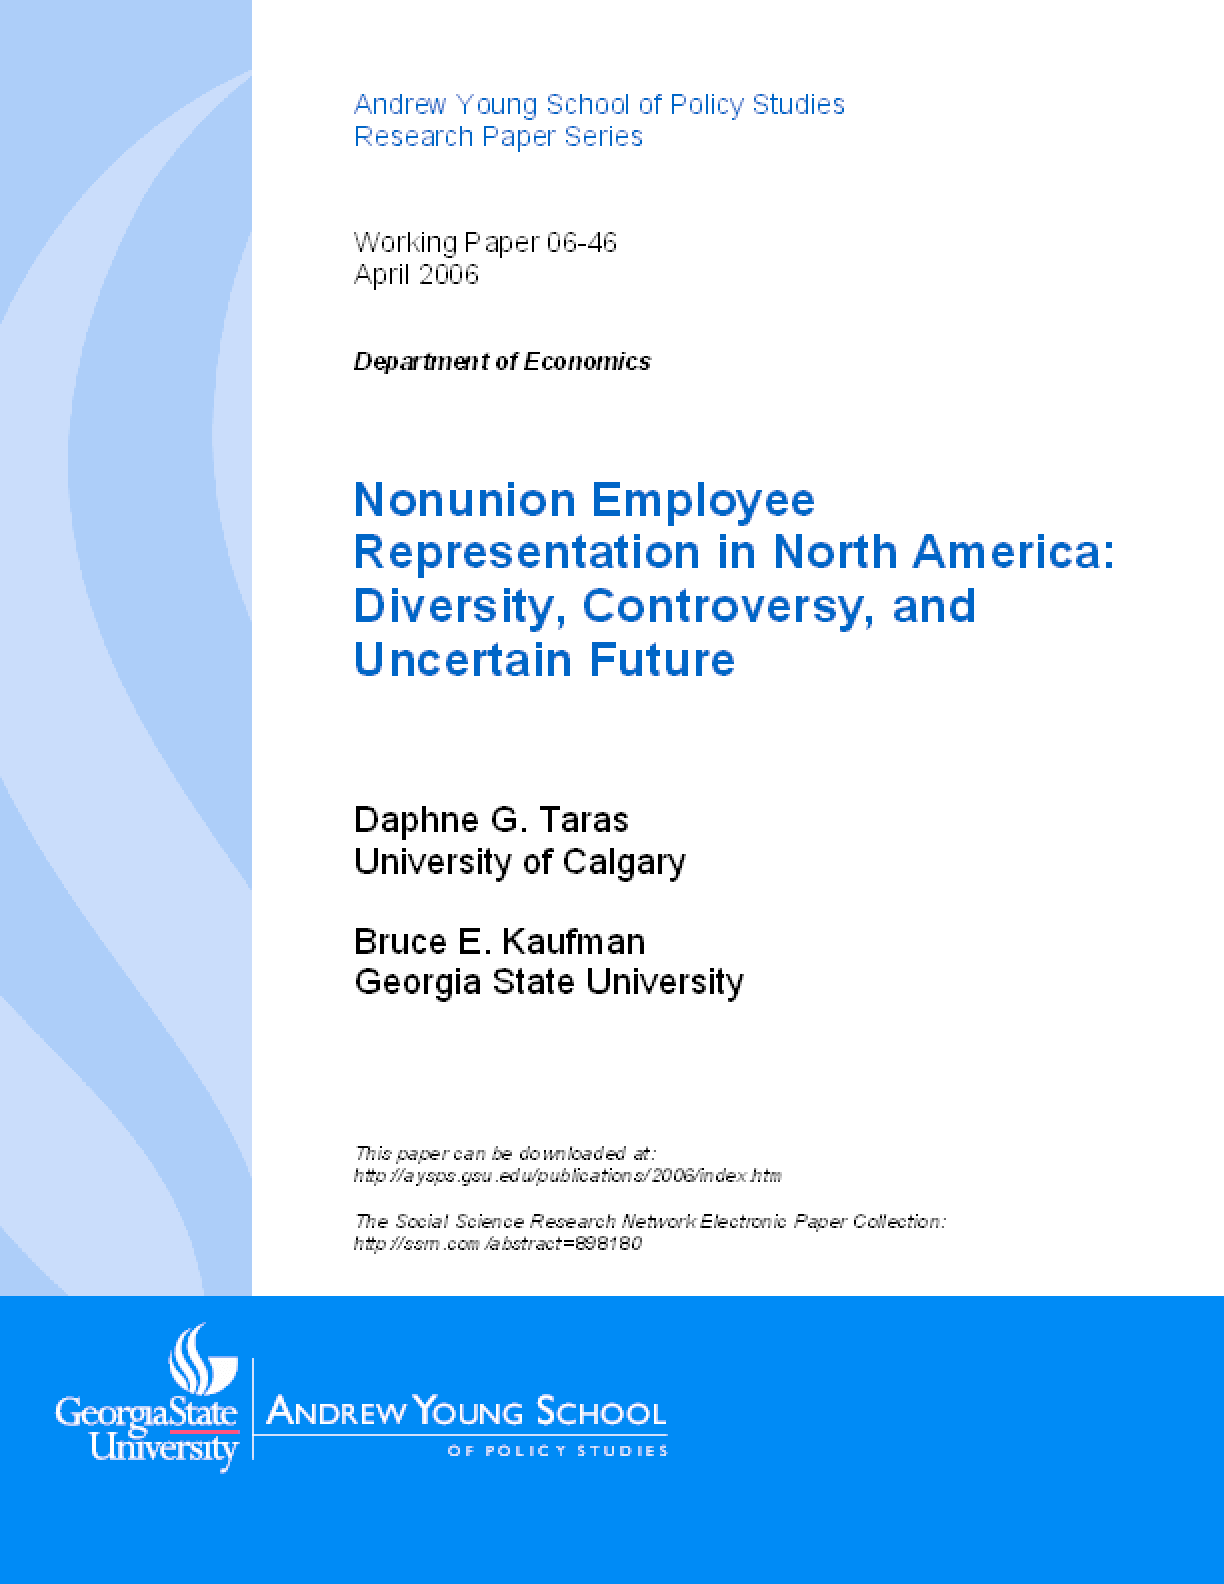 Nonunion Employee Representation in North America: Diversity, Controversy, and Uncertain Future